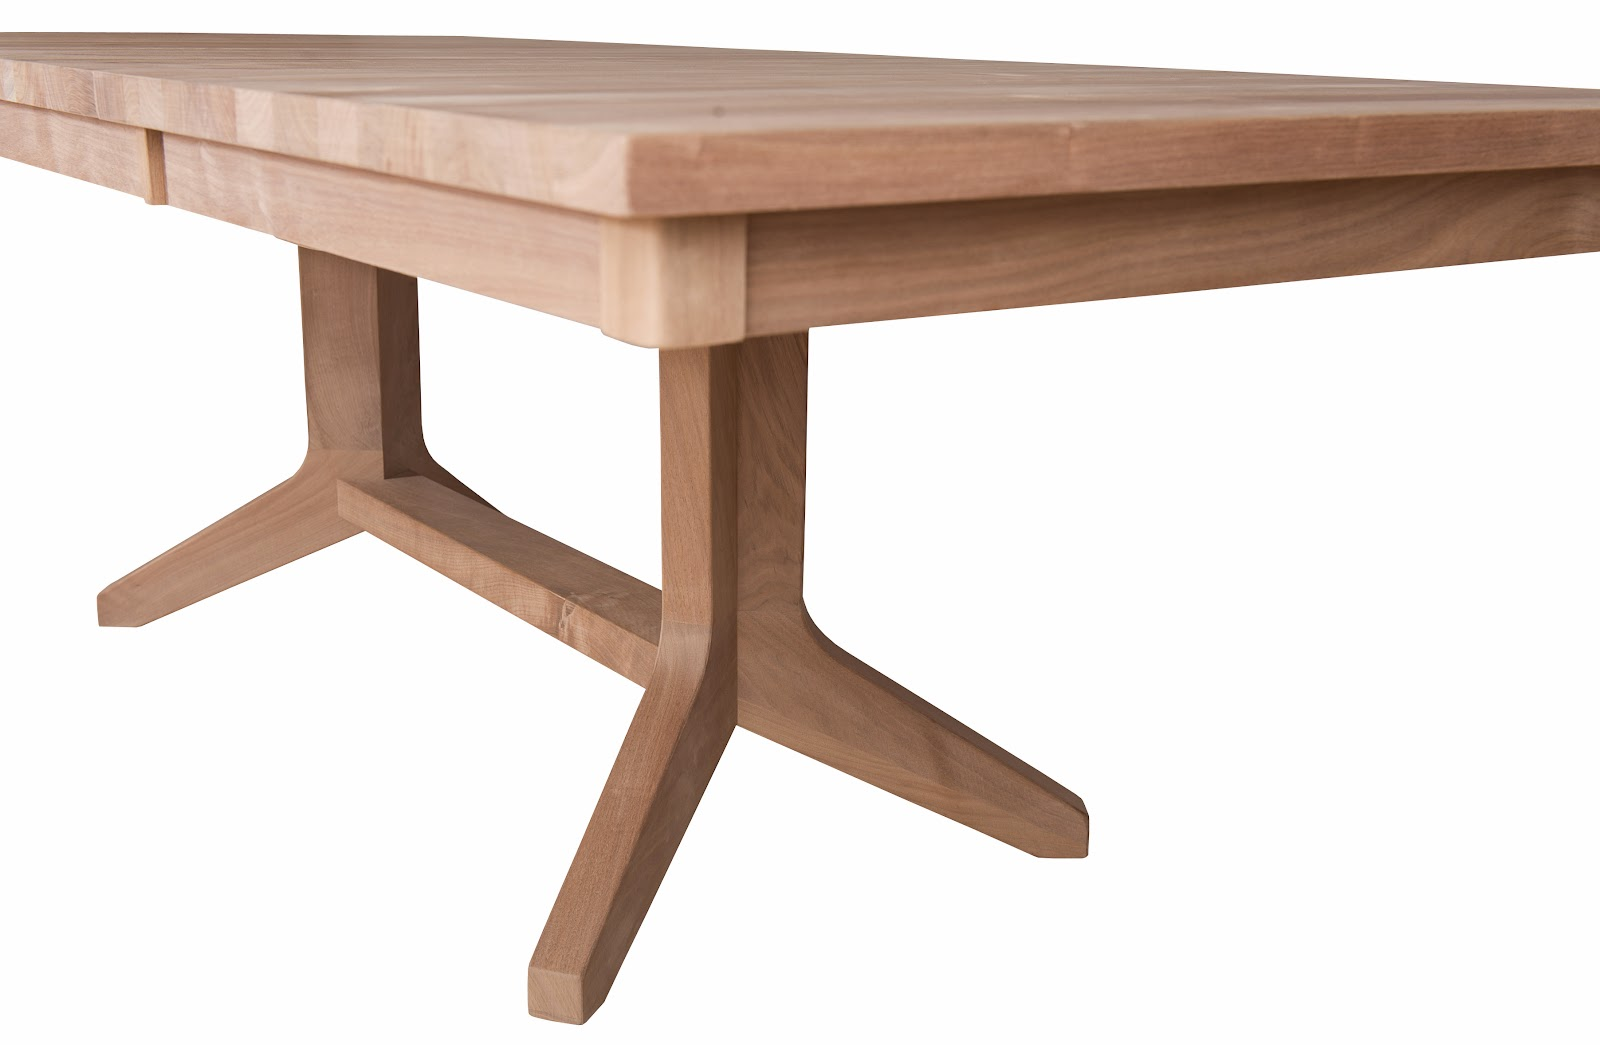 austin dining table built to order from solid hardwood the austin is a